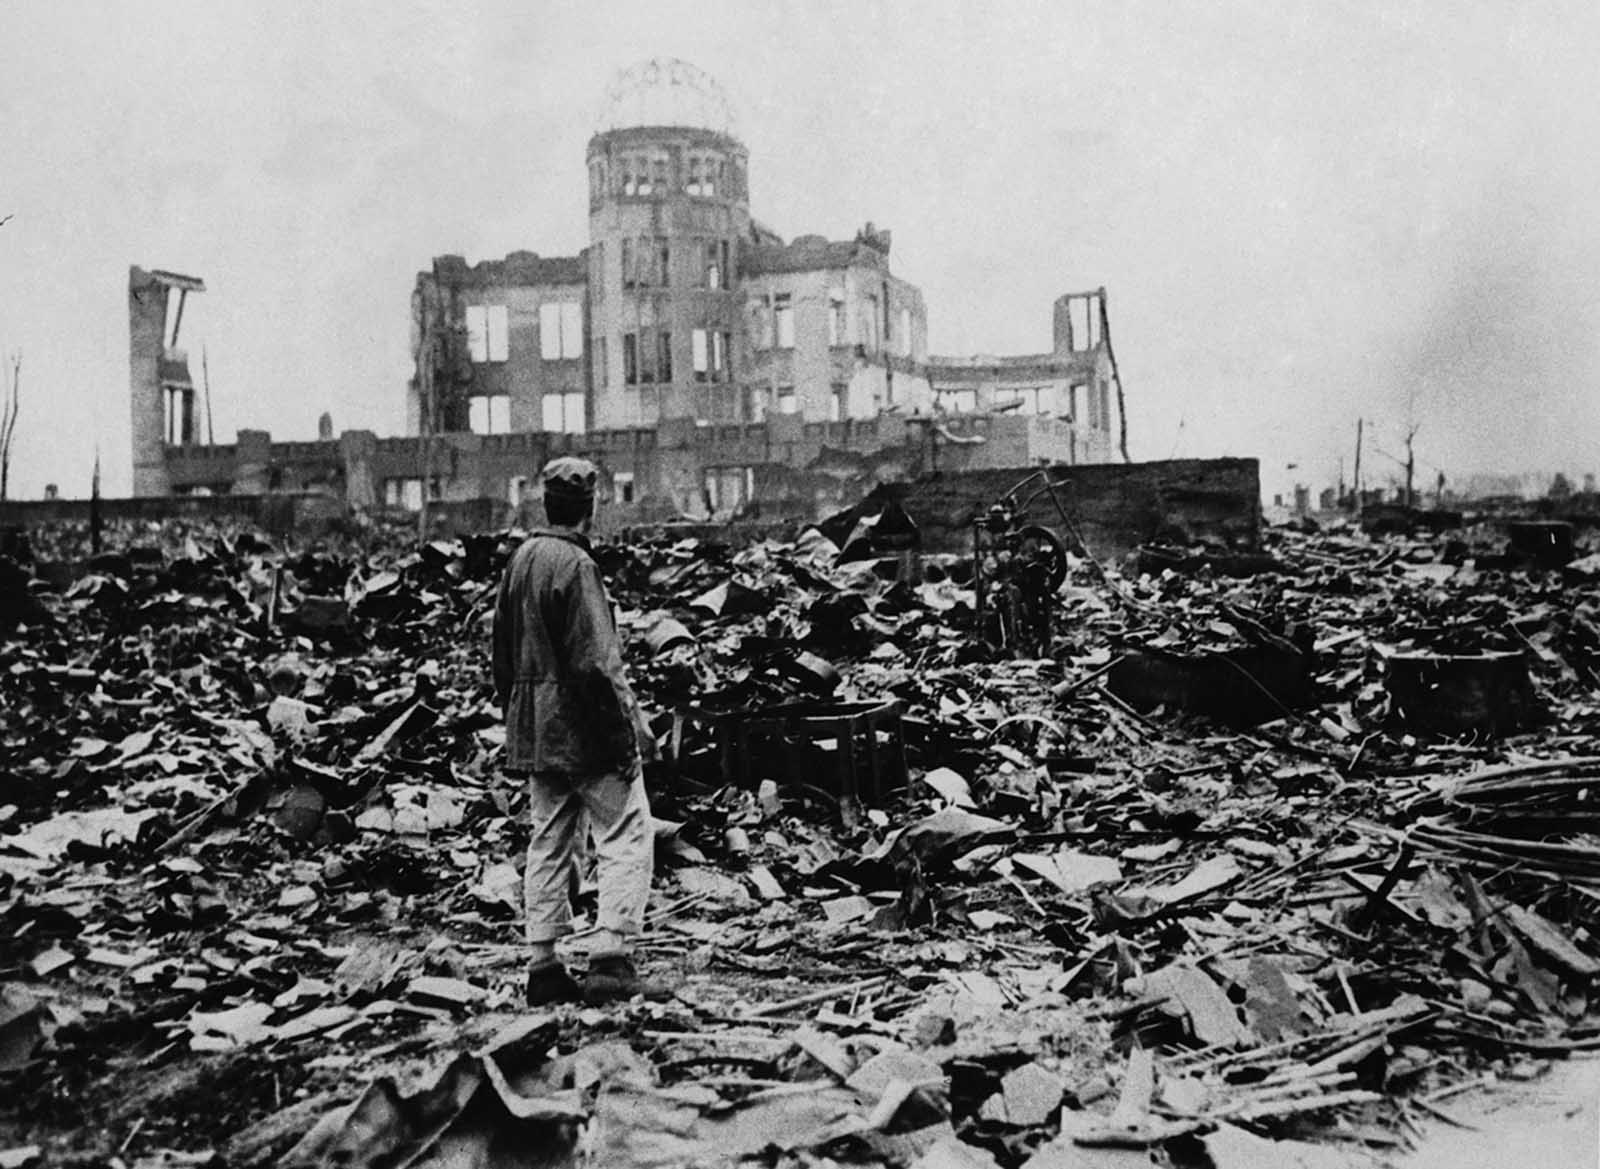 the events before and after the explosion in john herseys hiroshima